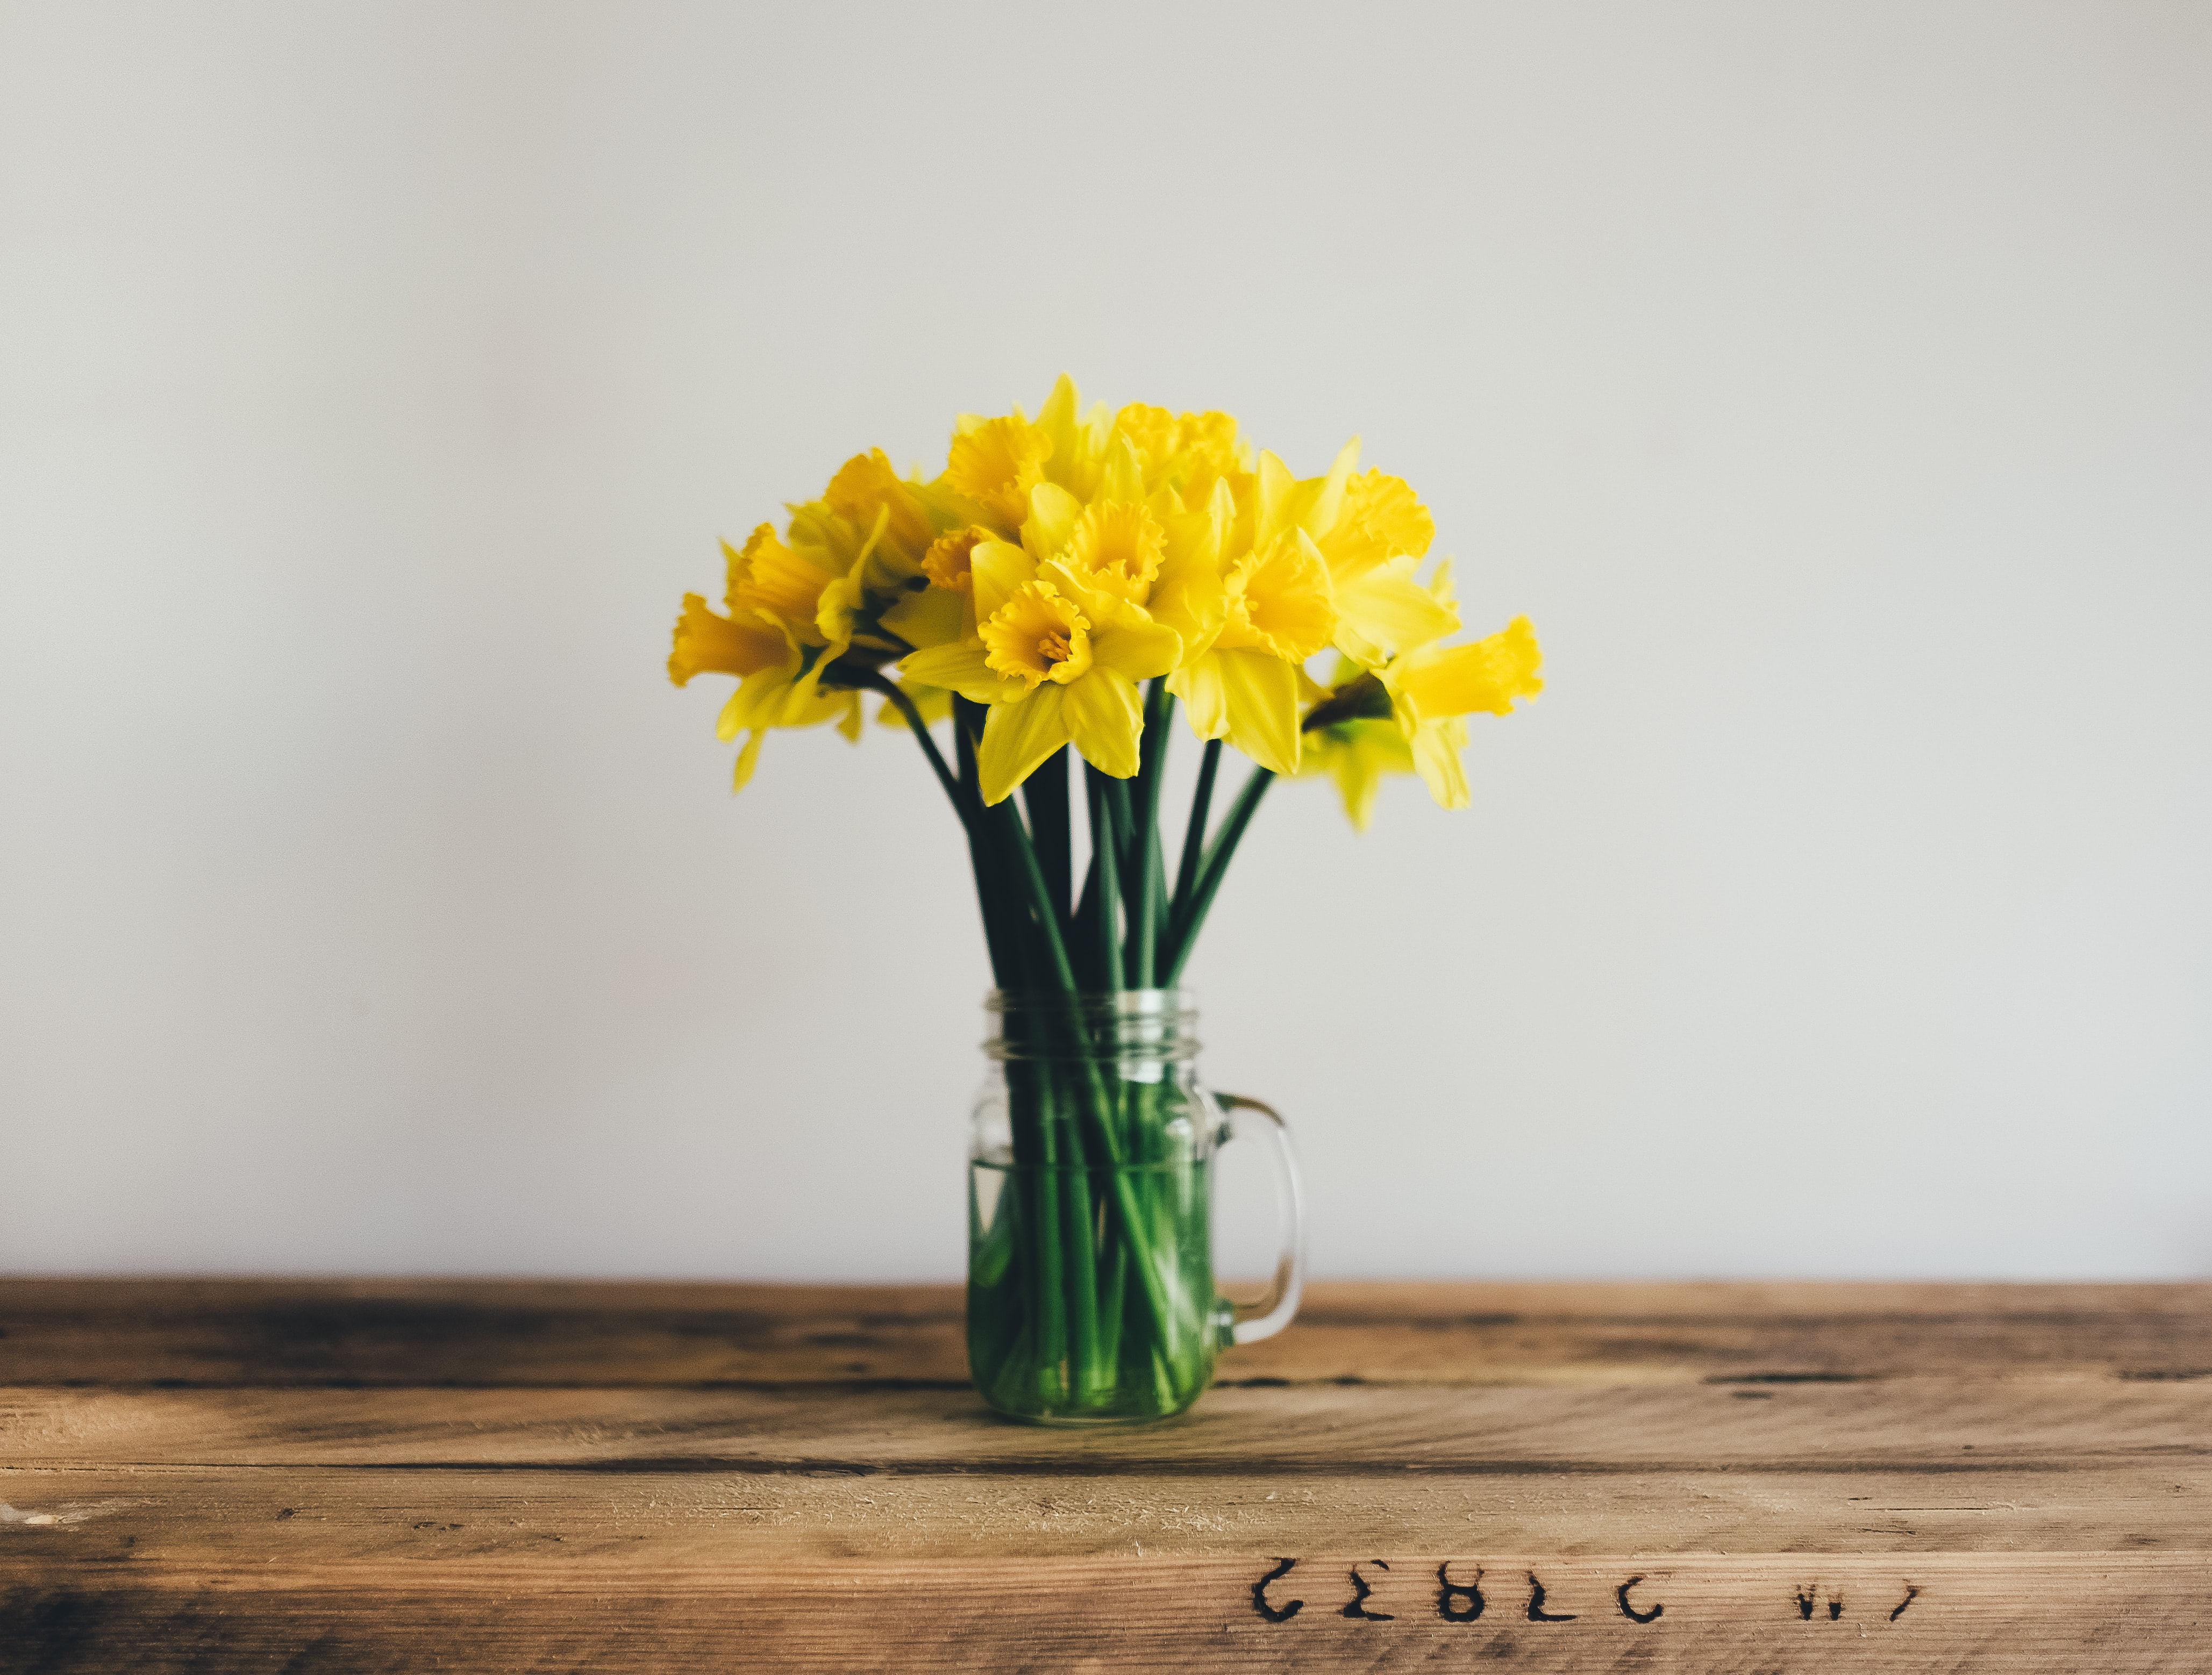 A glass jar with yellow daffodils on a wooden surface